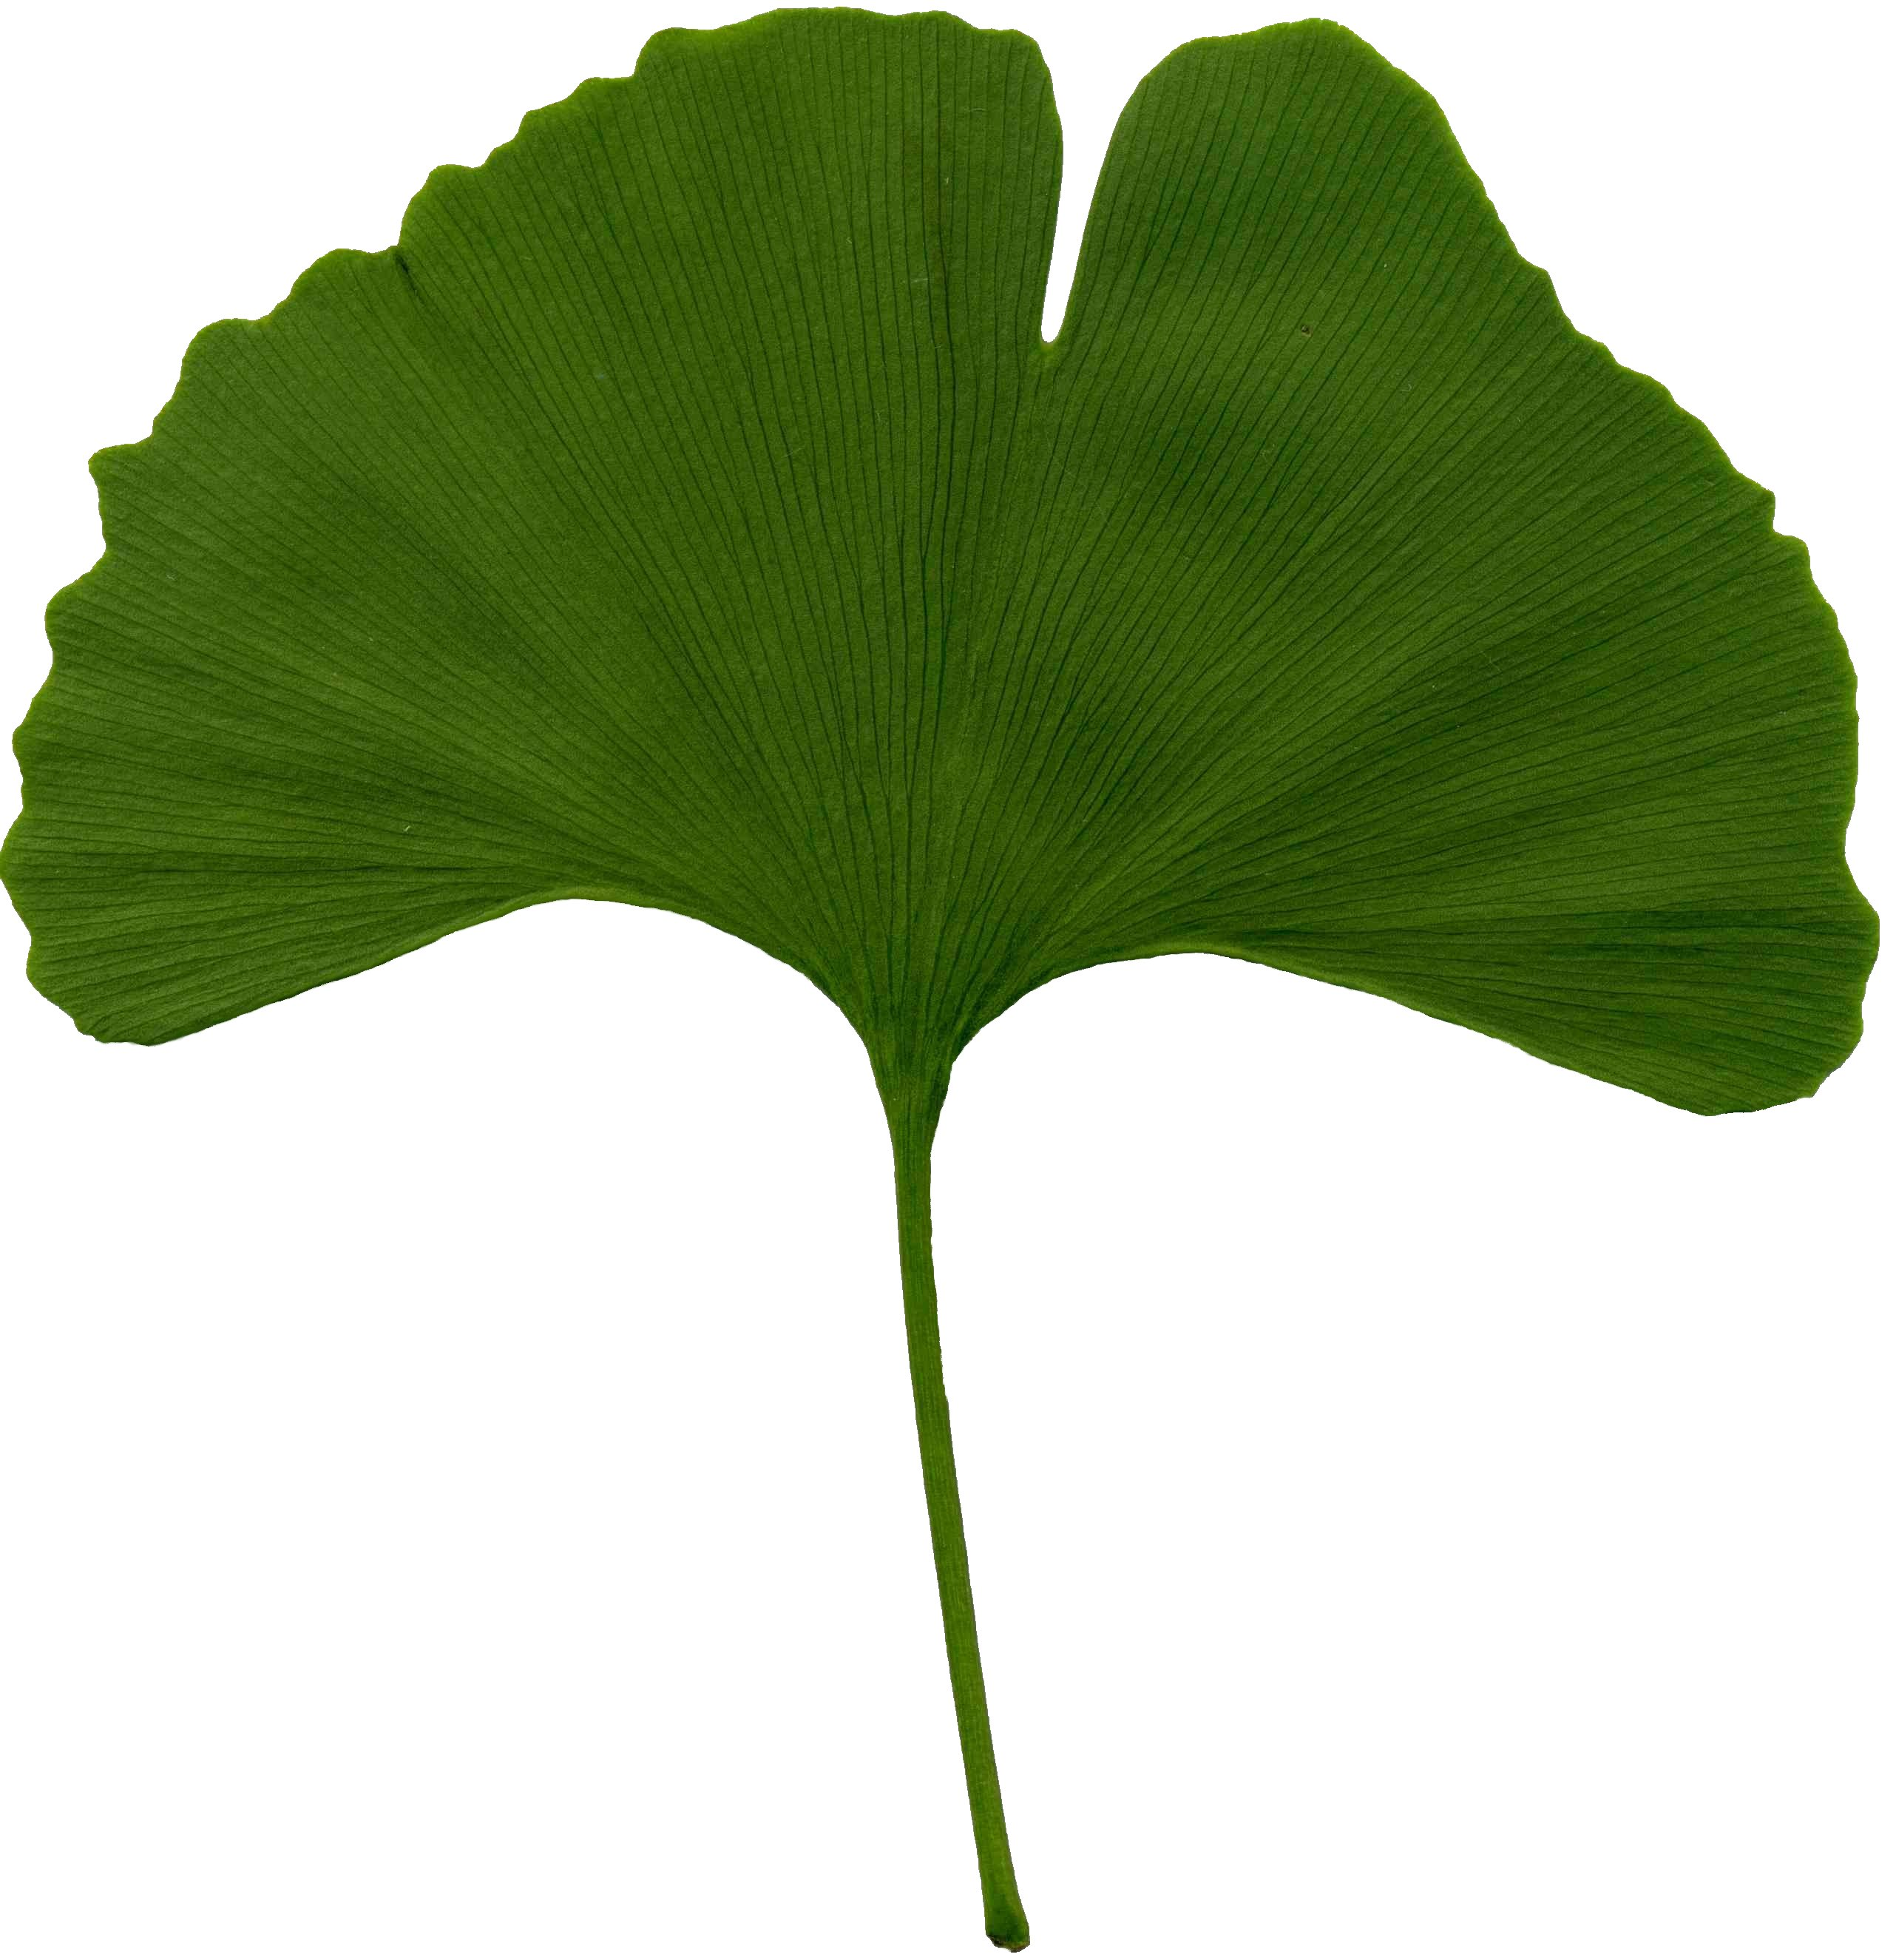 http://upload.wikimedia.org/wikipedia/commons/3/32/Ginkgo_biloba_scanned_leaf.jpg